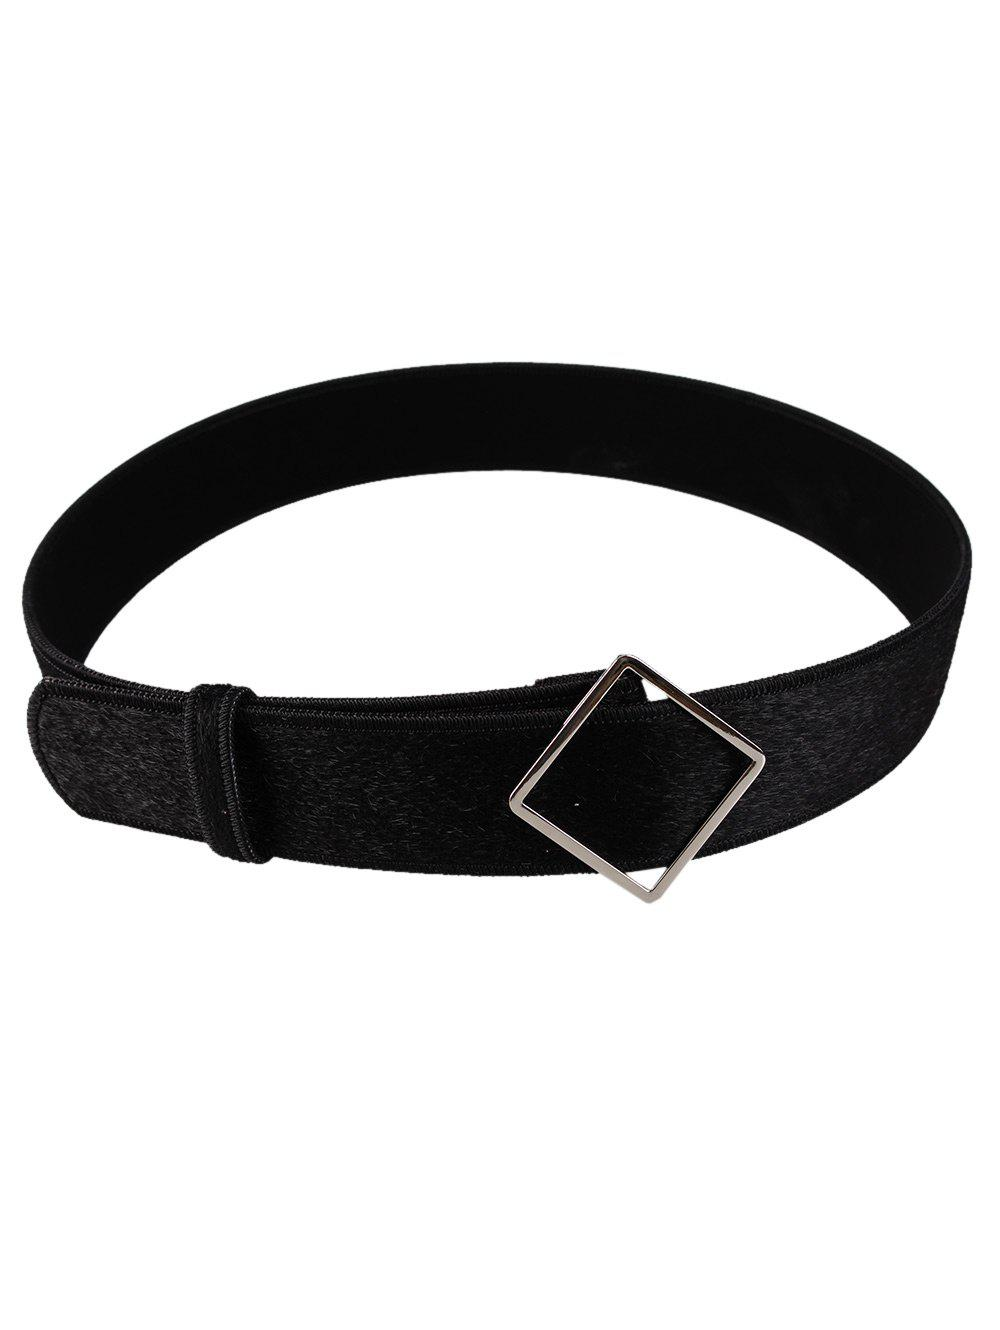 Vintage Irregular Metal Buckle Design Faux Suede Waist Belt - BLACK